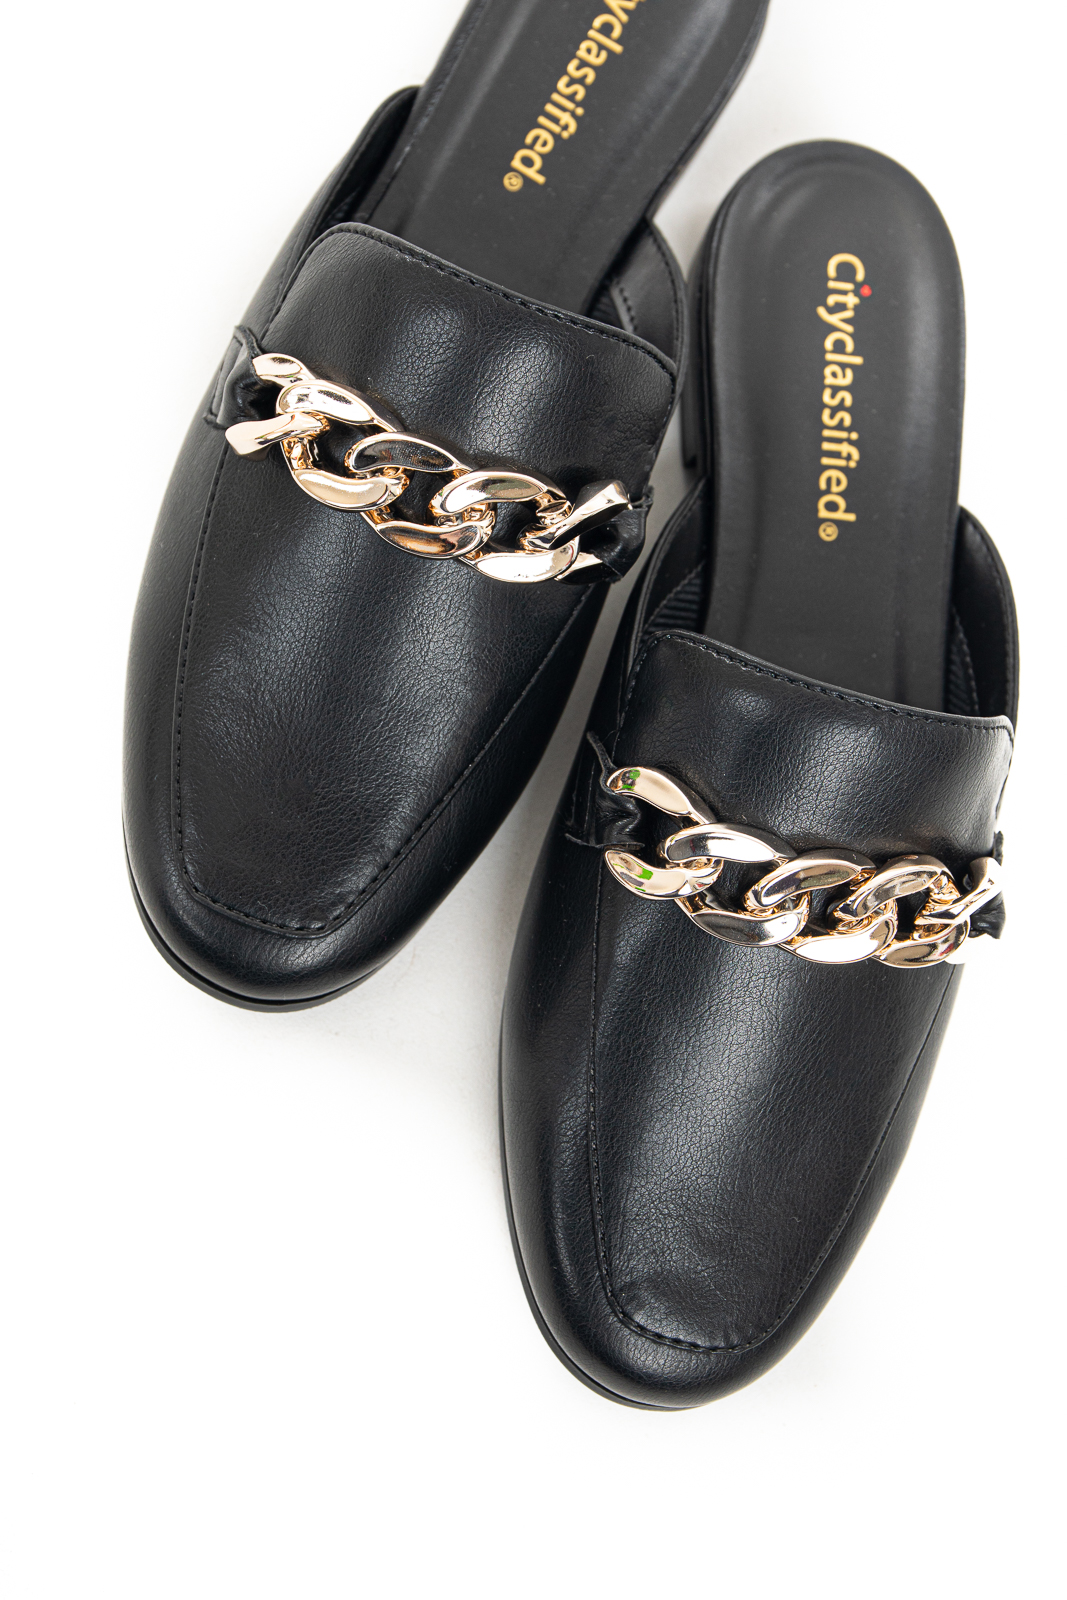 Black Leather Slip On Flat Mules with Gold Chain Detail